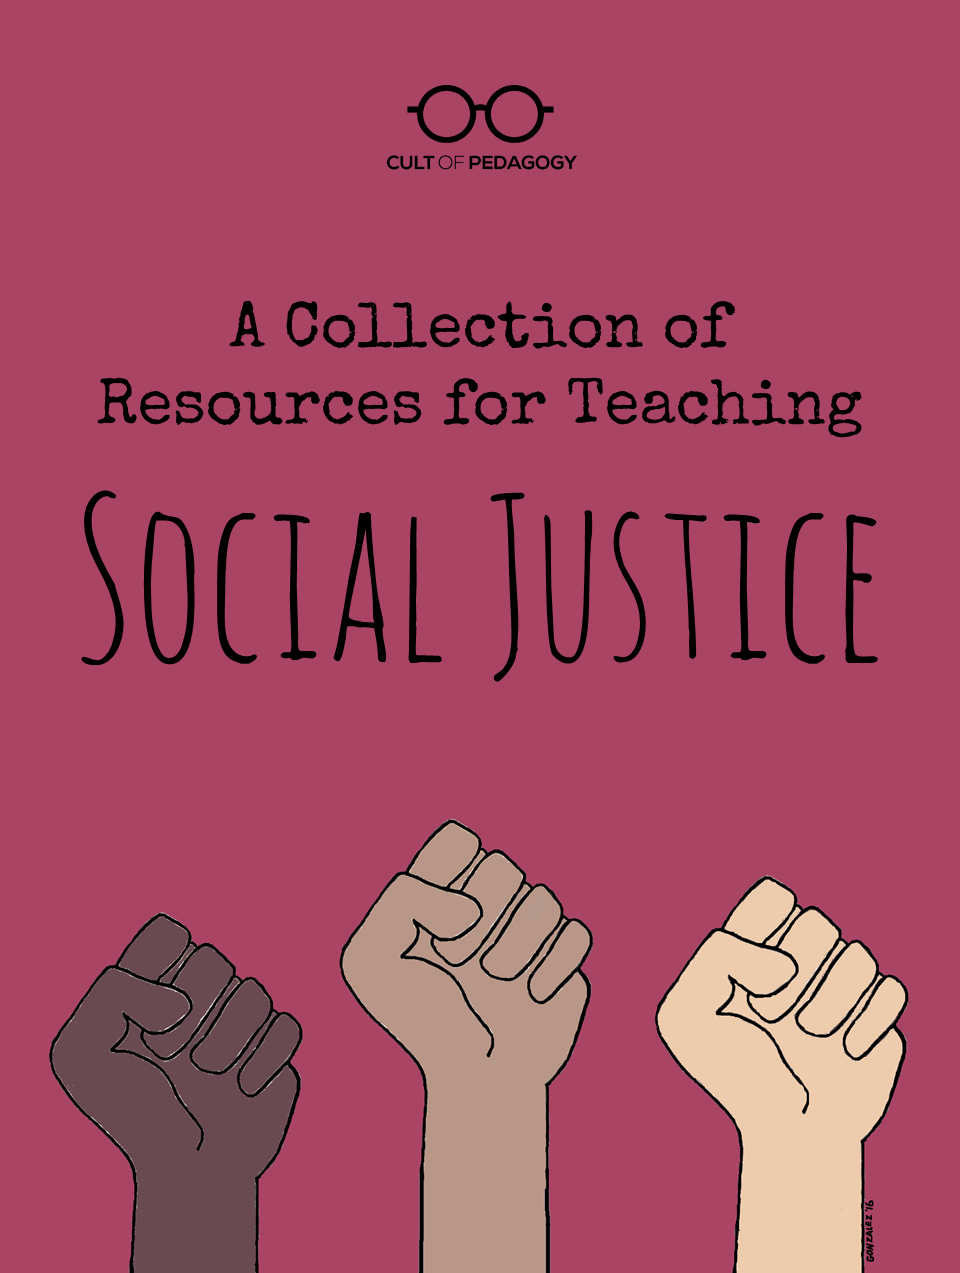 hight resolution of A Collection of Resources for Teaching Social Justice   Cult of Pedagogy